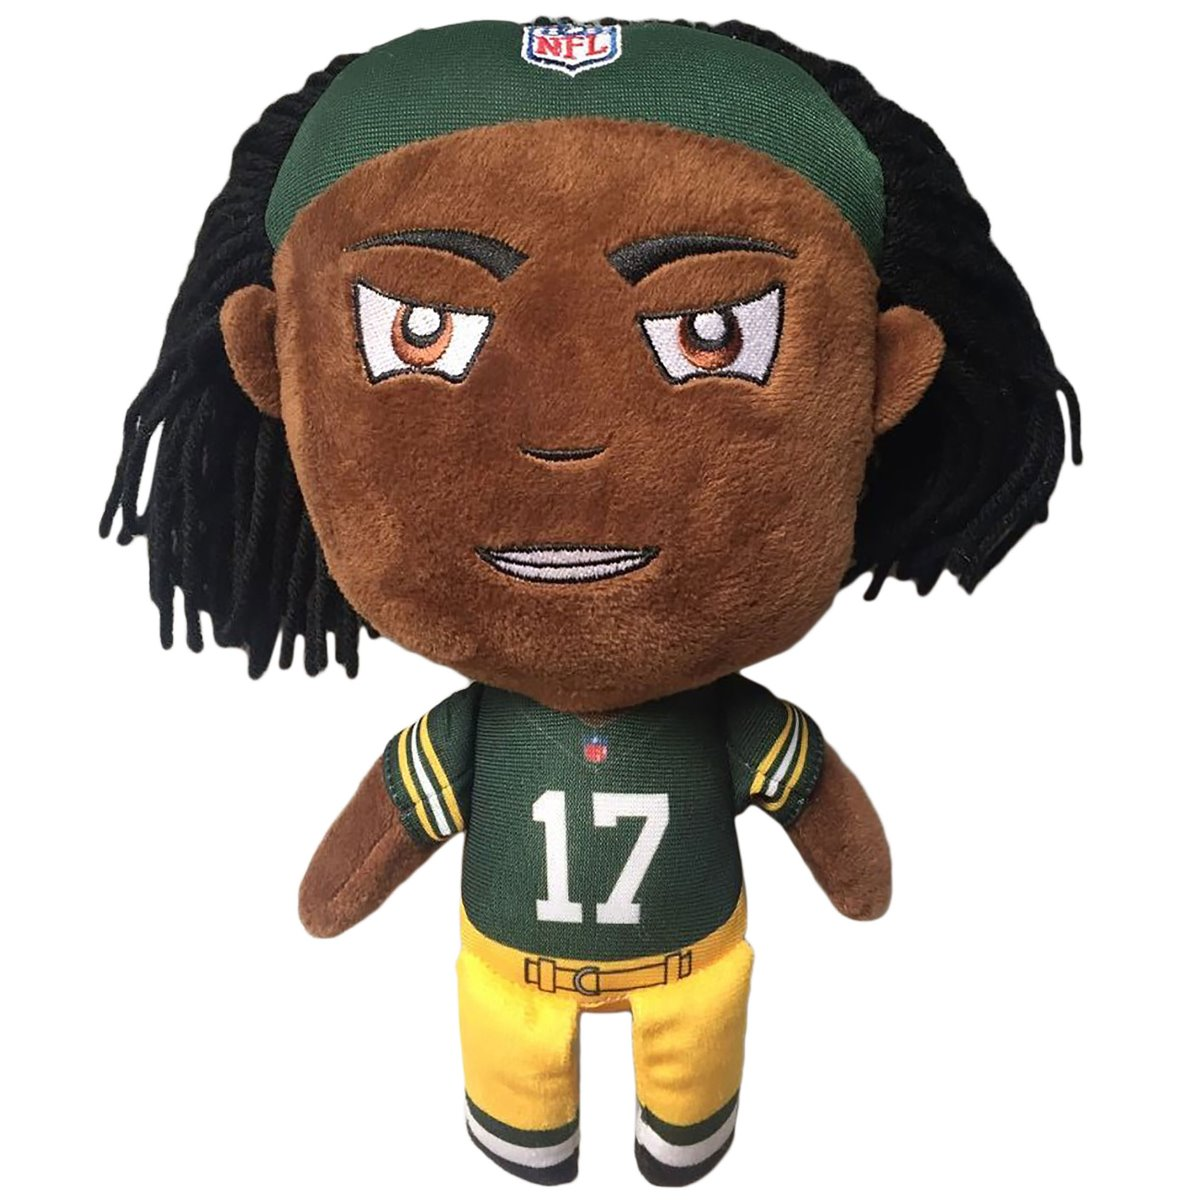 Green Bay Packers 17 Plush Baby Bro At The Packers Pro Shop